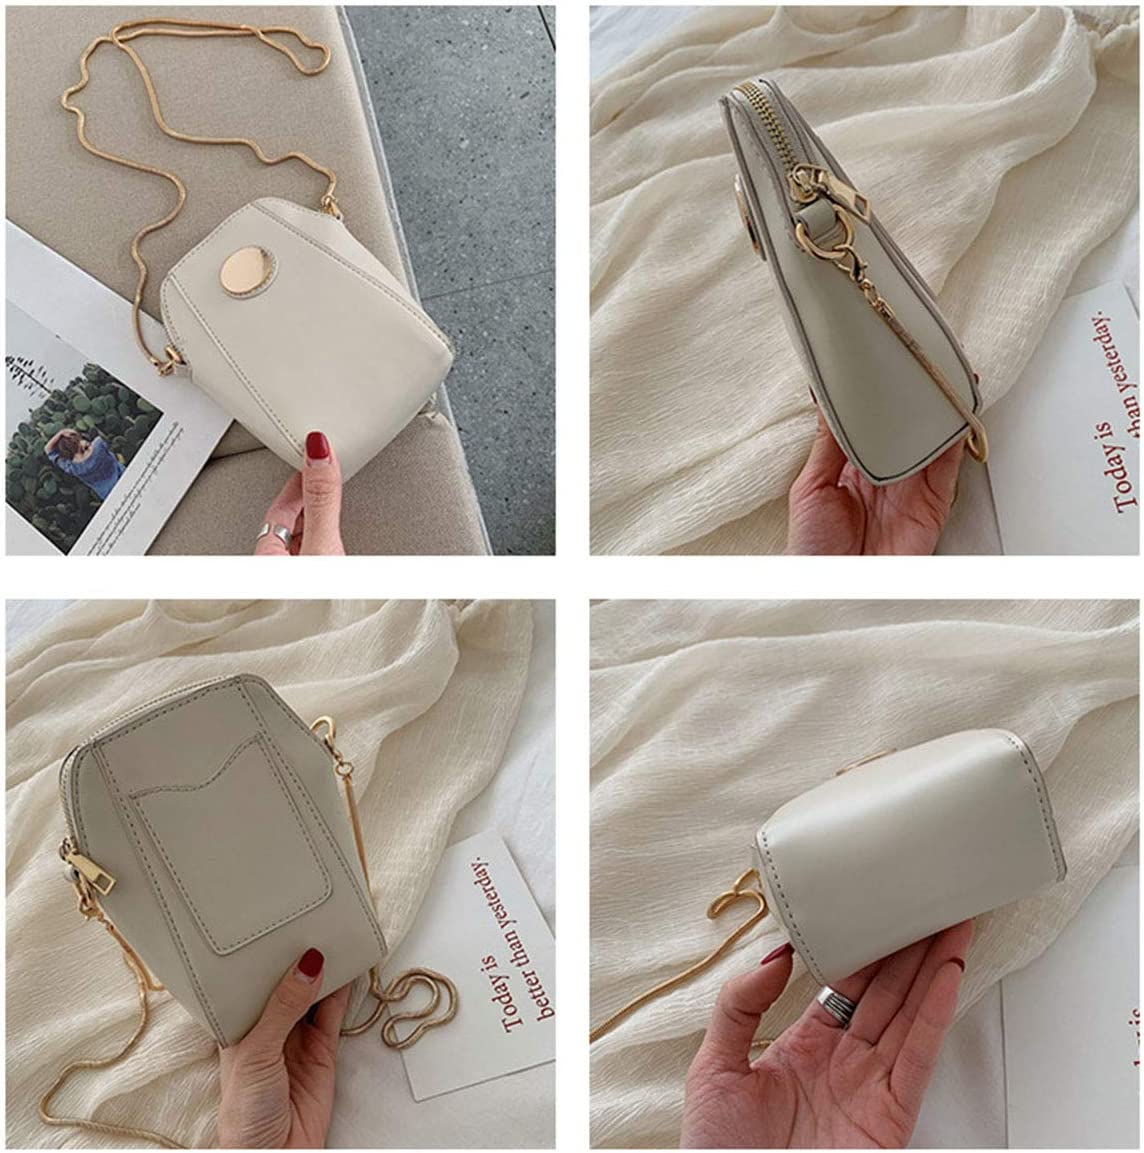 HWX Summer New Mobile Phone Bag 2019 New Wave Small Bag Fashion Wild Simple Womens Korean Version of The Chain Messenger Bag,Beige,10.5176.5cm